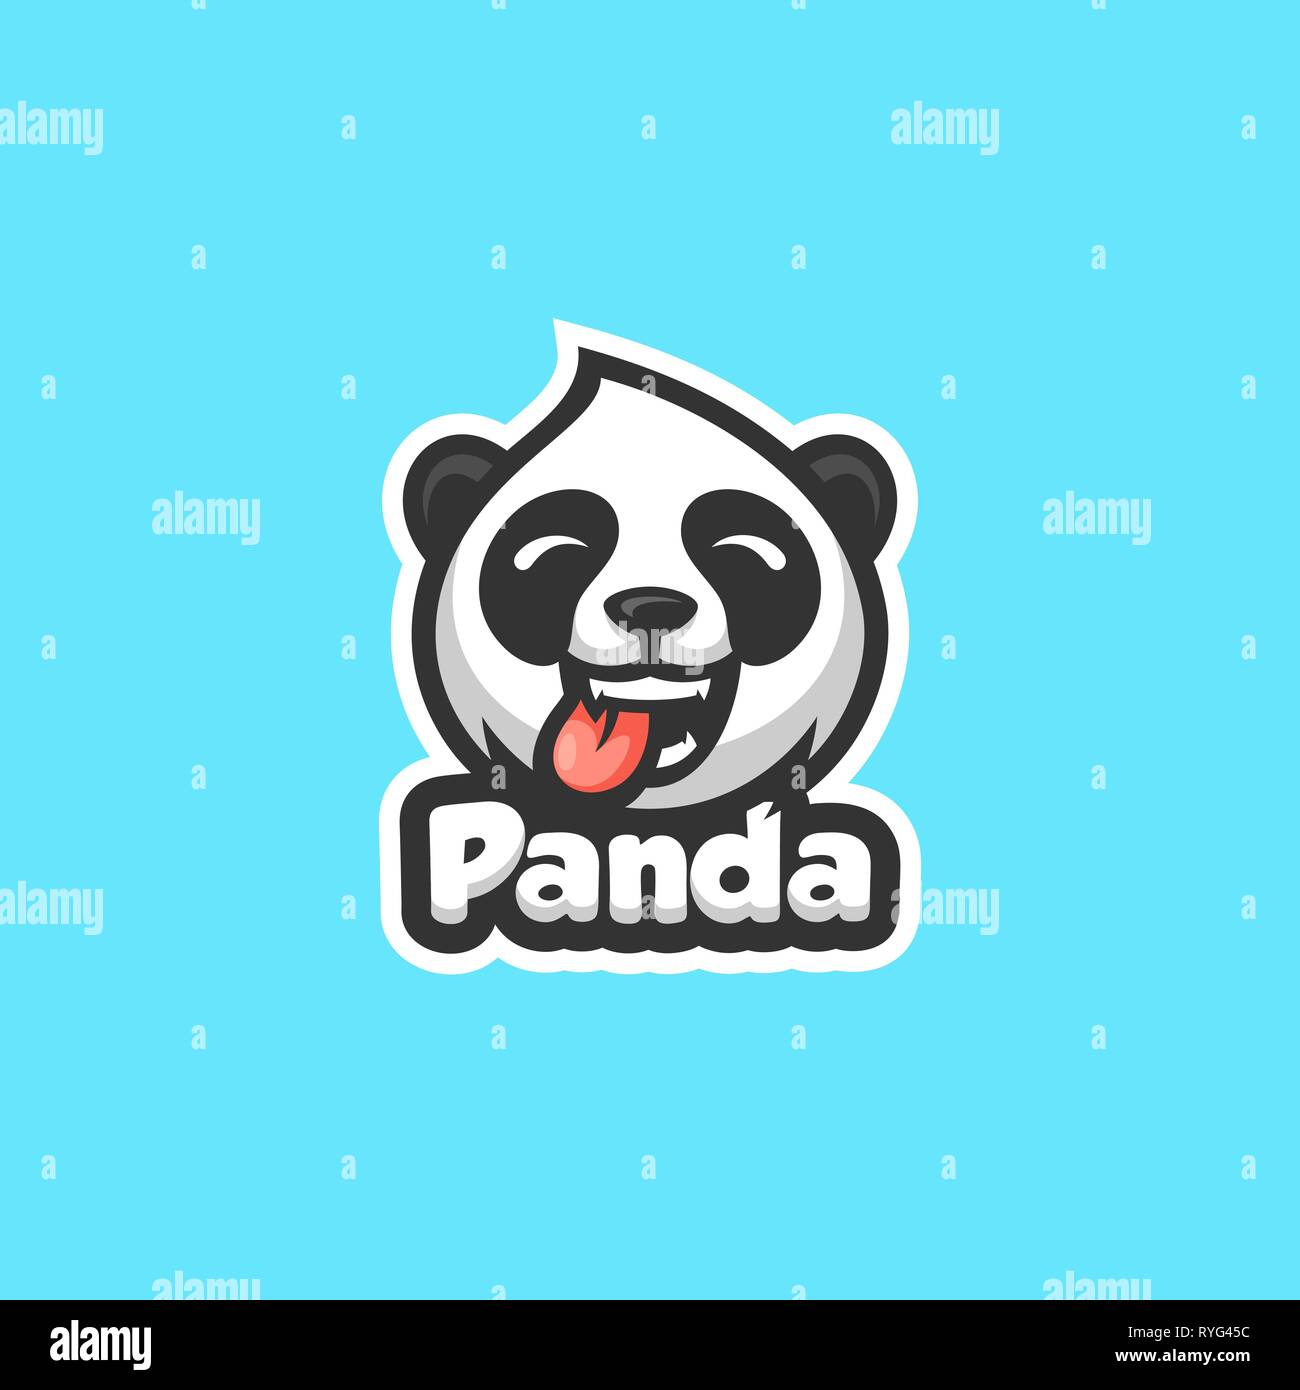 Panda Concept illustration vector template. Suitable for Creative Industry, Multimedia, entertainment, Educations, Shop, and any related business - Stock Image